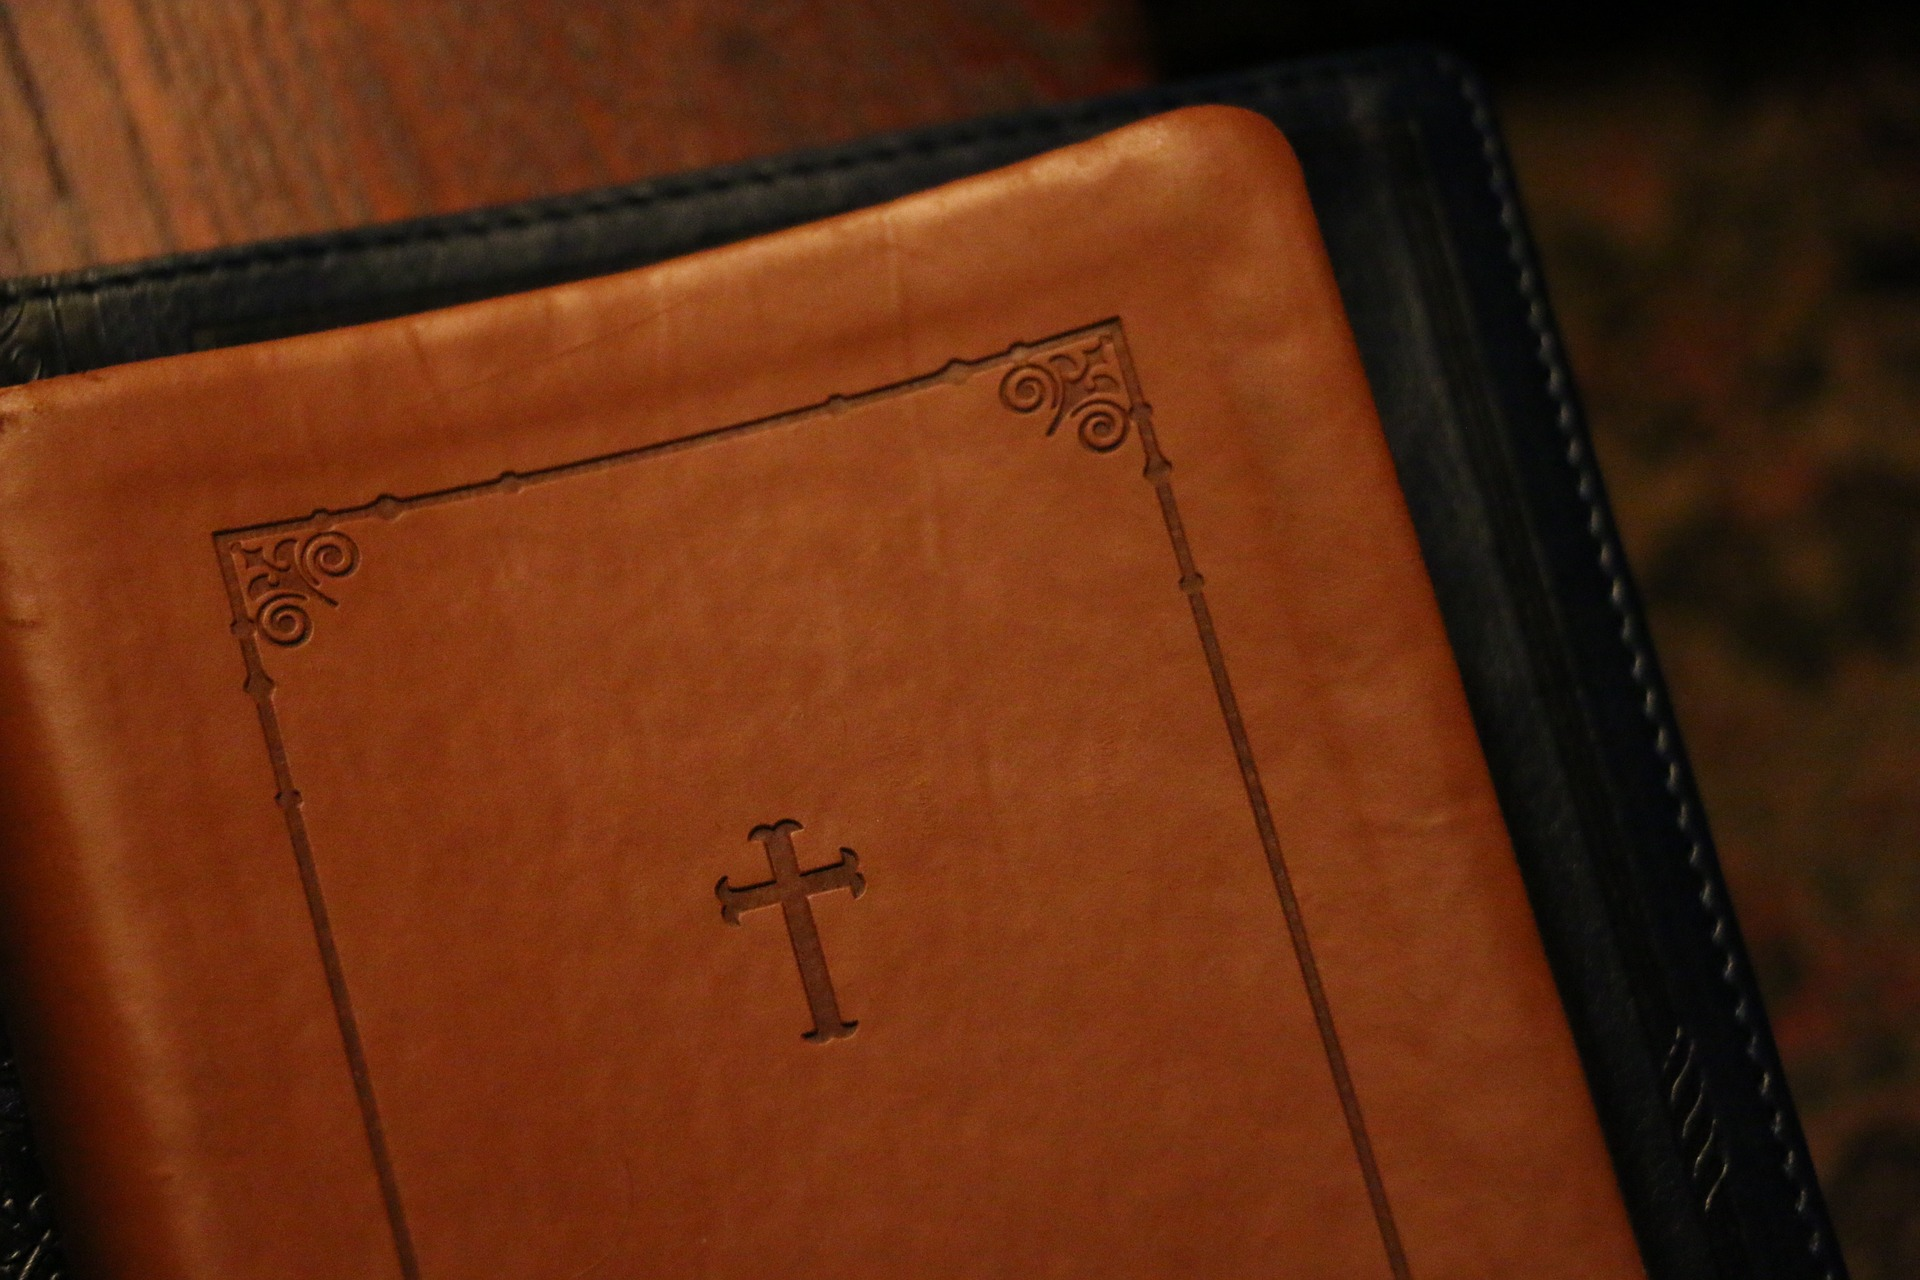 VOM Korea uses Bibles translated by the North Korean government